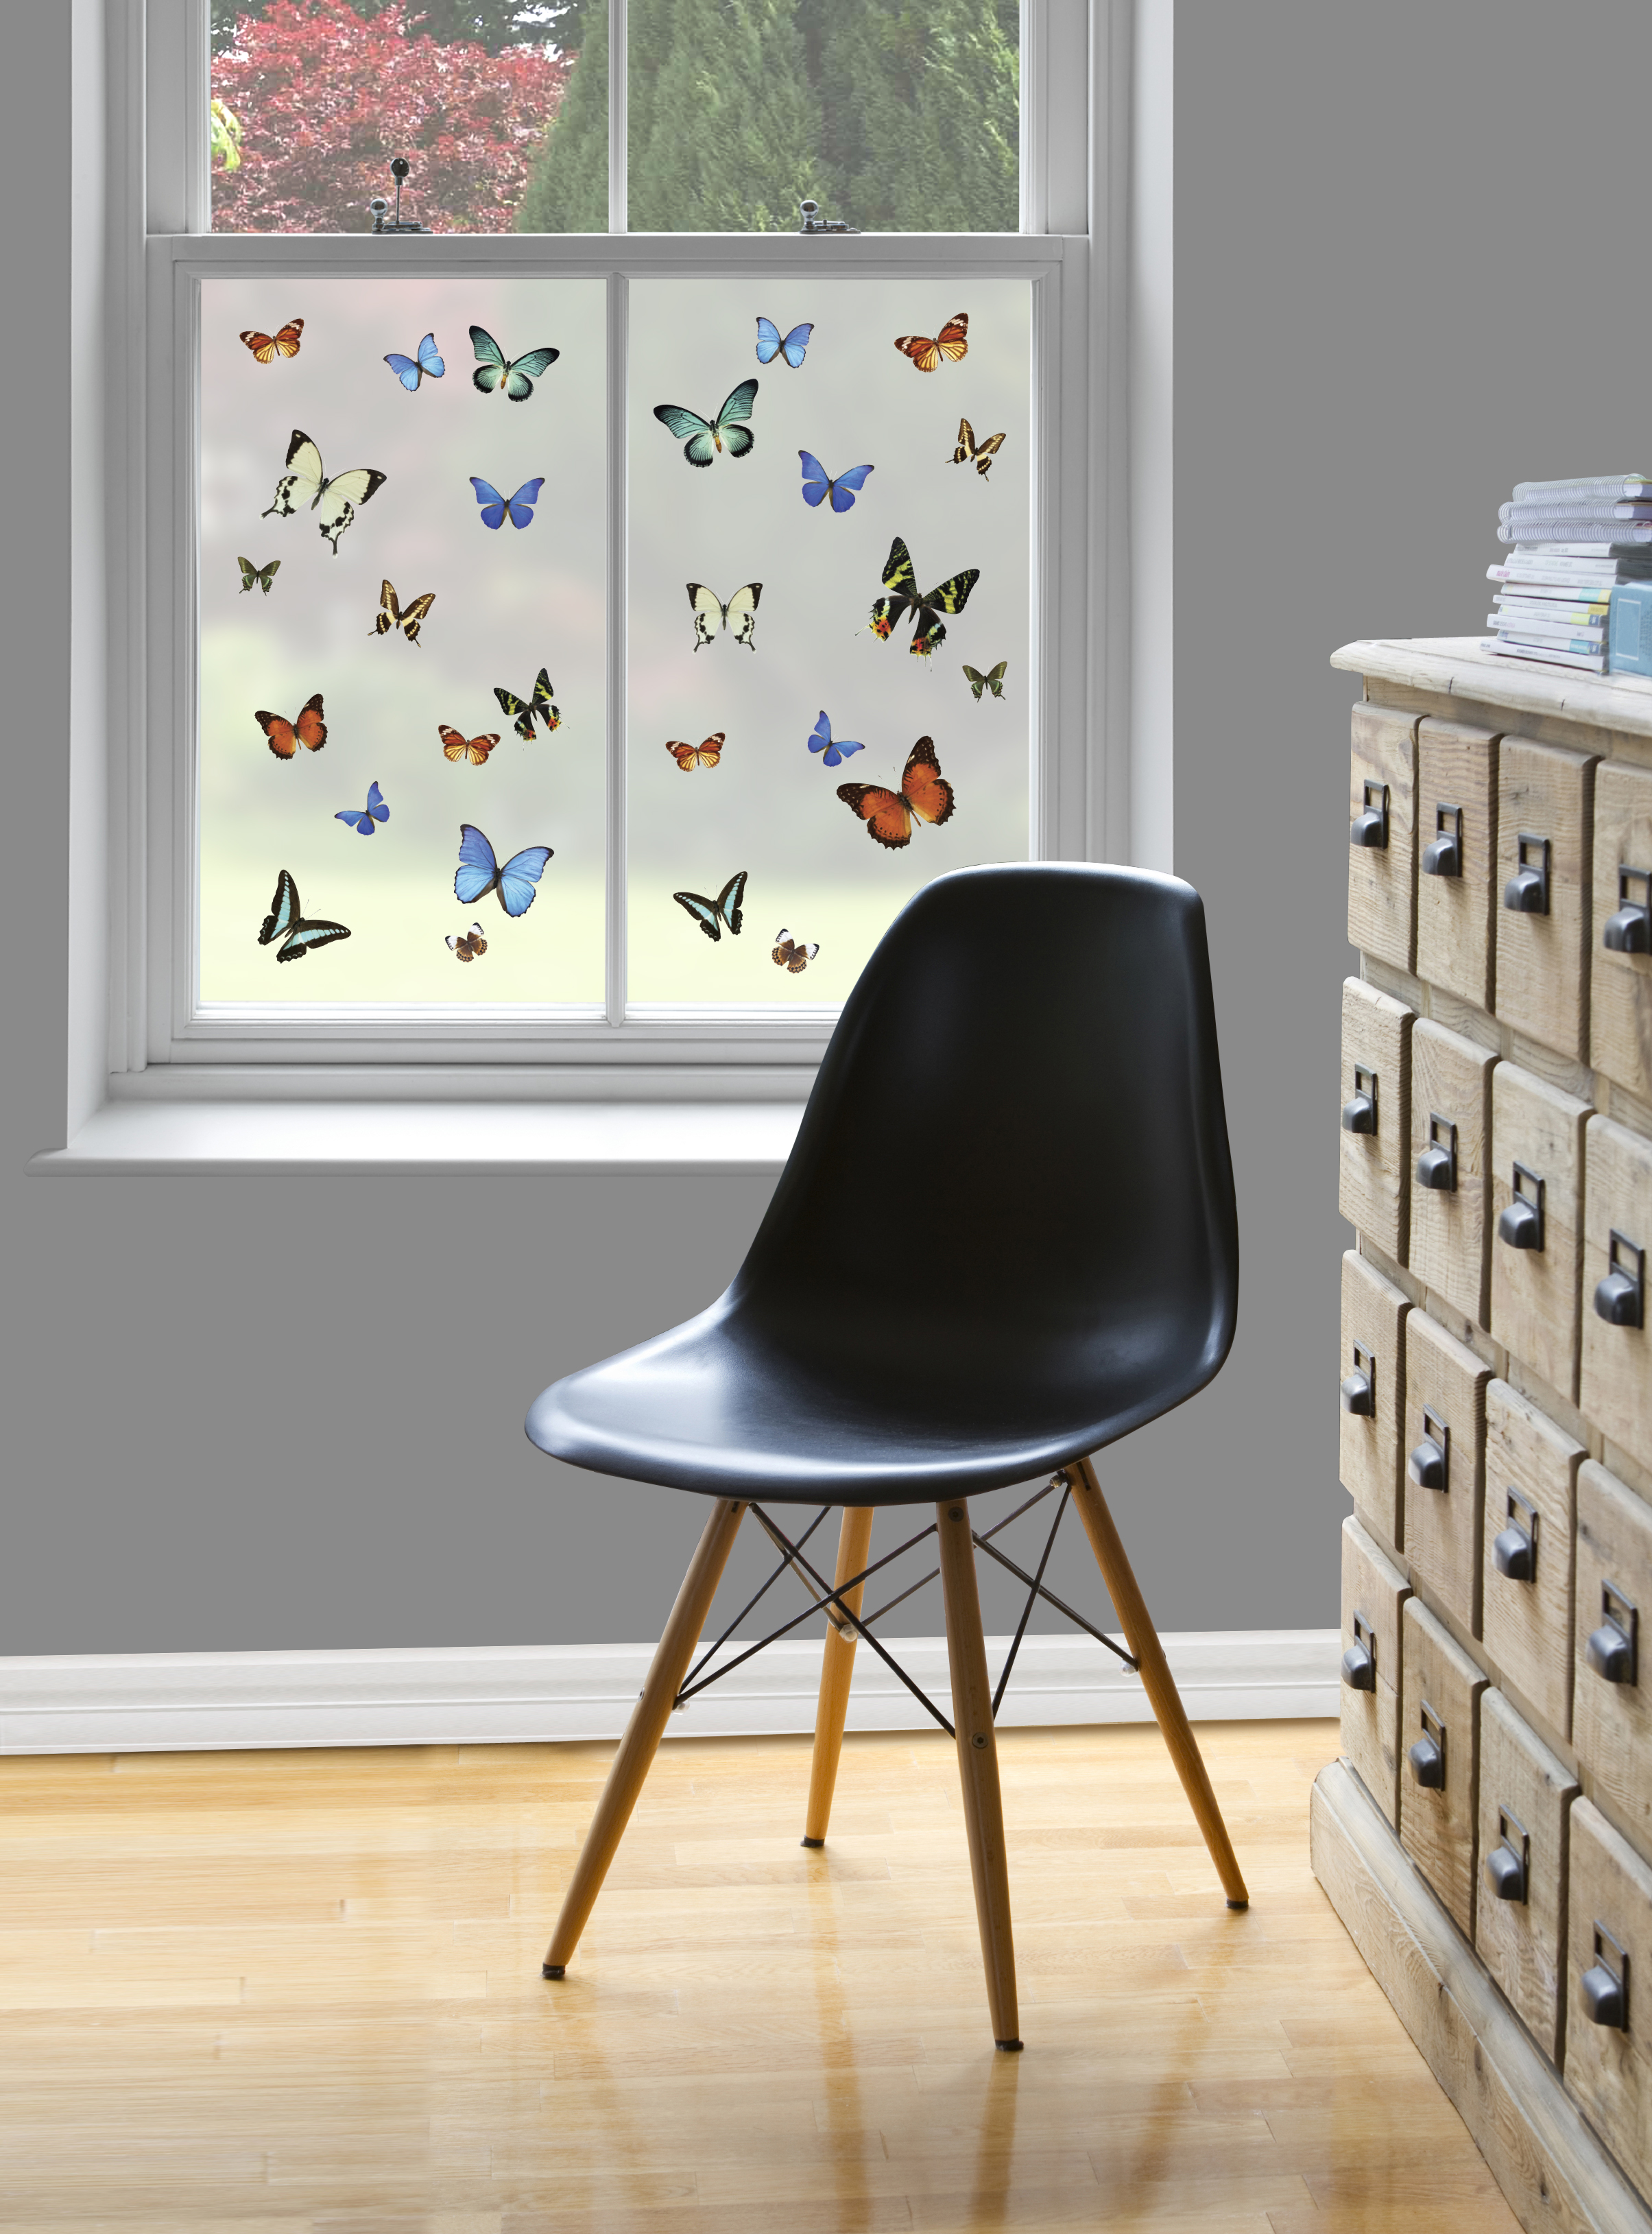 Butterfly Pattern Window Film, £12.25, provides privacy and screens out a boring view. (Purlfrost/PA)